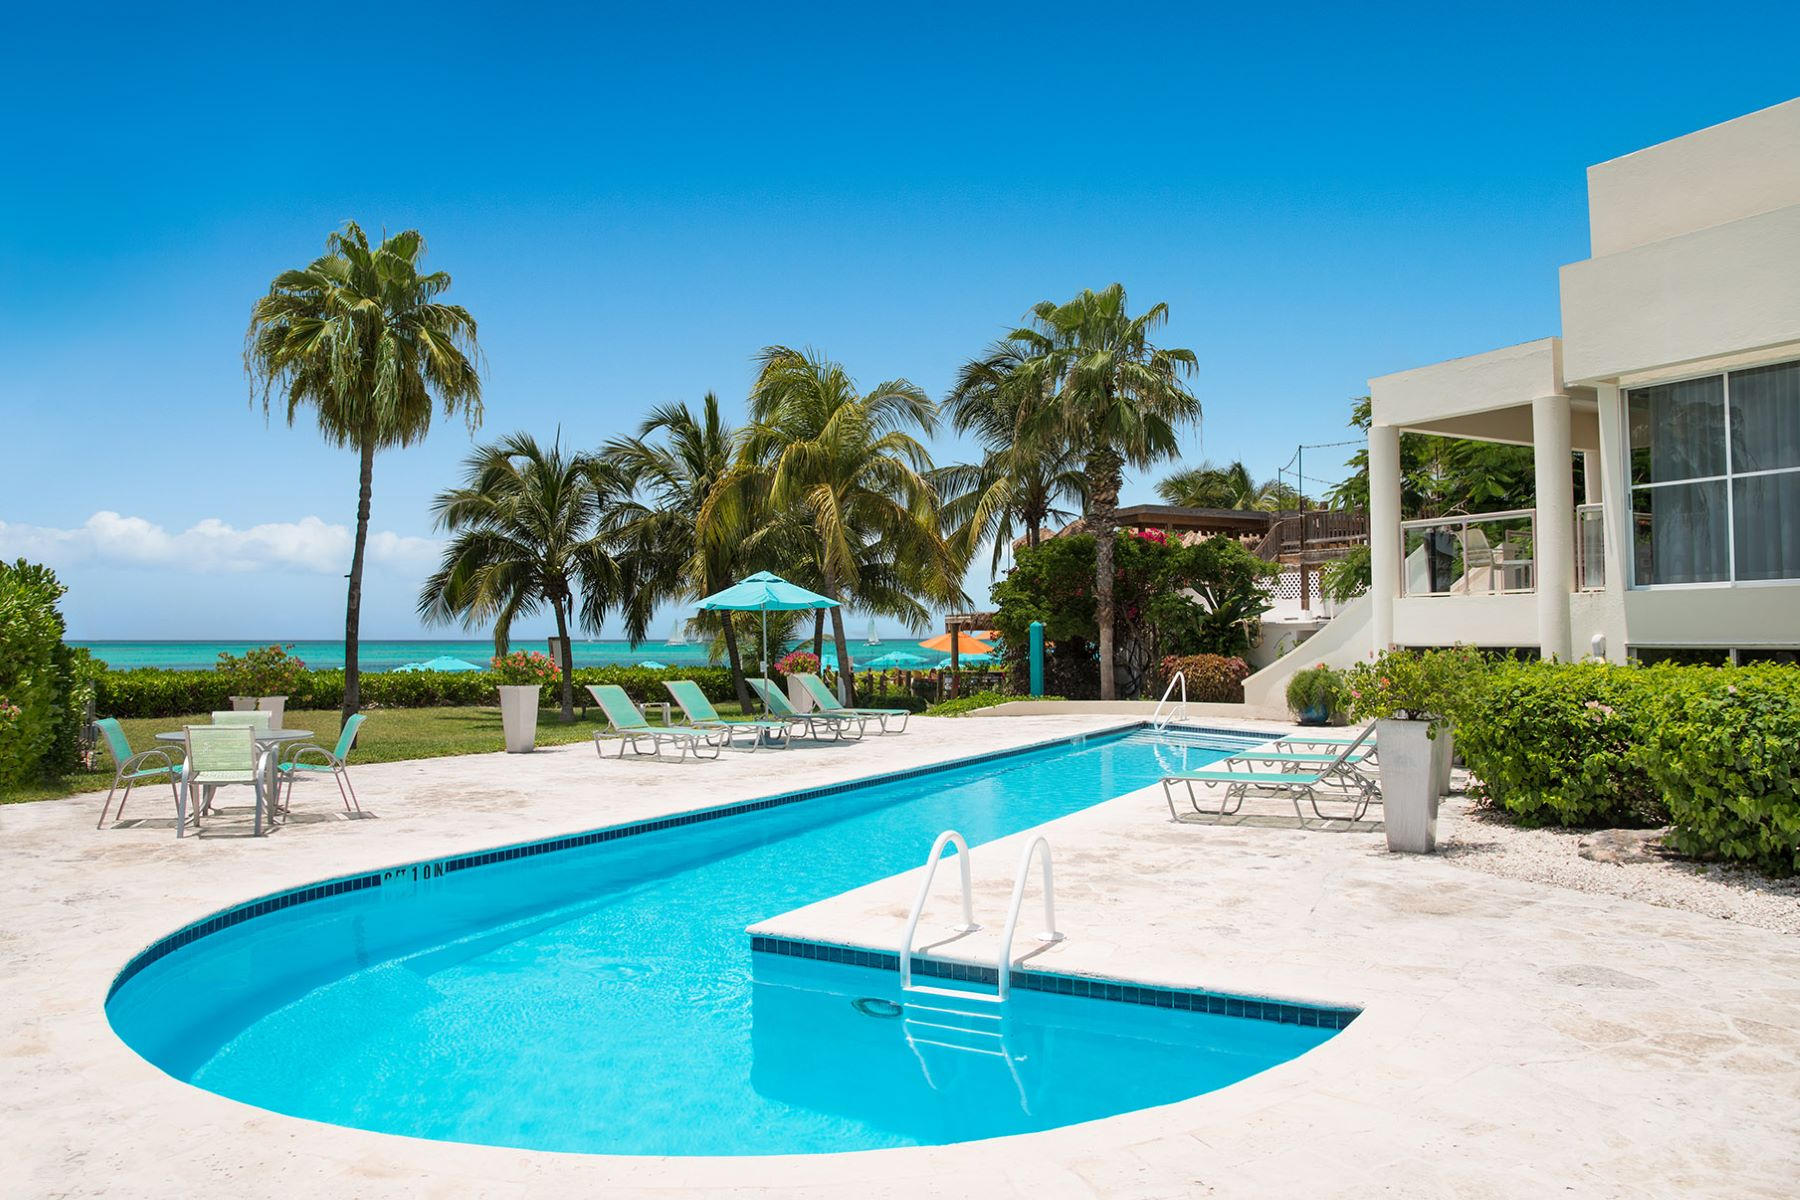 Additional photo for property listing at Coral Gardens - Suite 4201 Beachfront Grace Bay, Providenciales TC Îles Turques Et Caïques